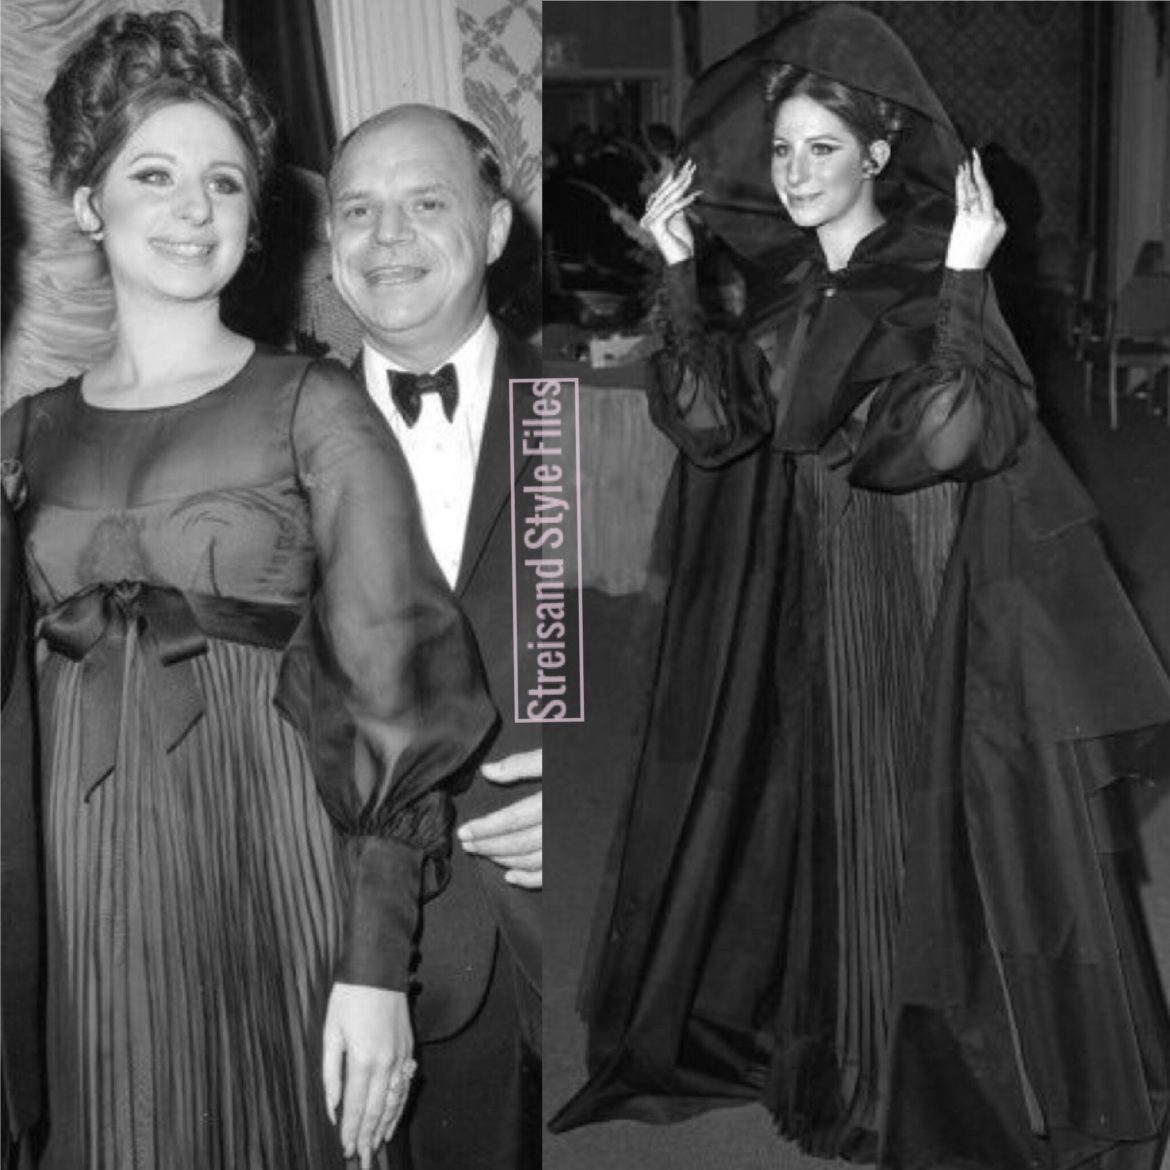 1969 Friars Club Entertainer Of The Year Award In Dior